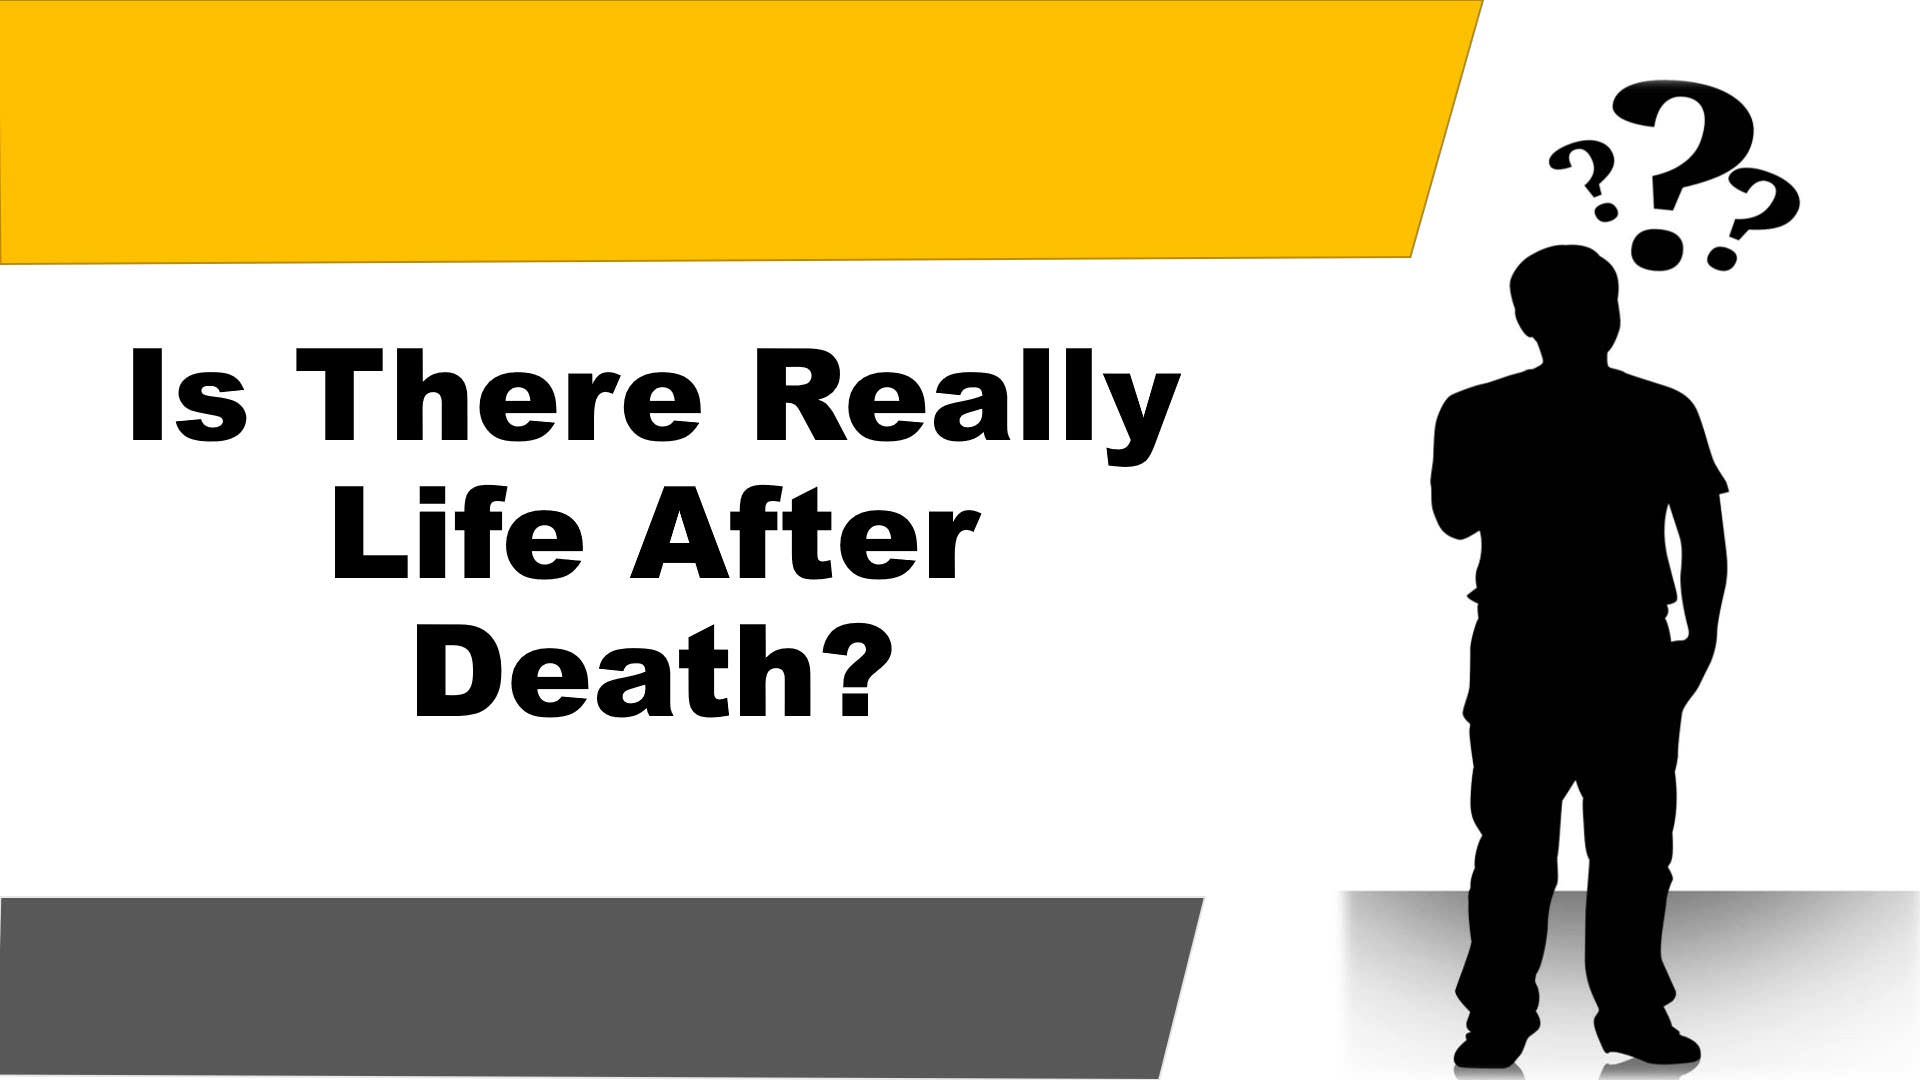 Is There Really Life After Death?